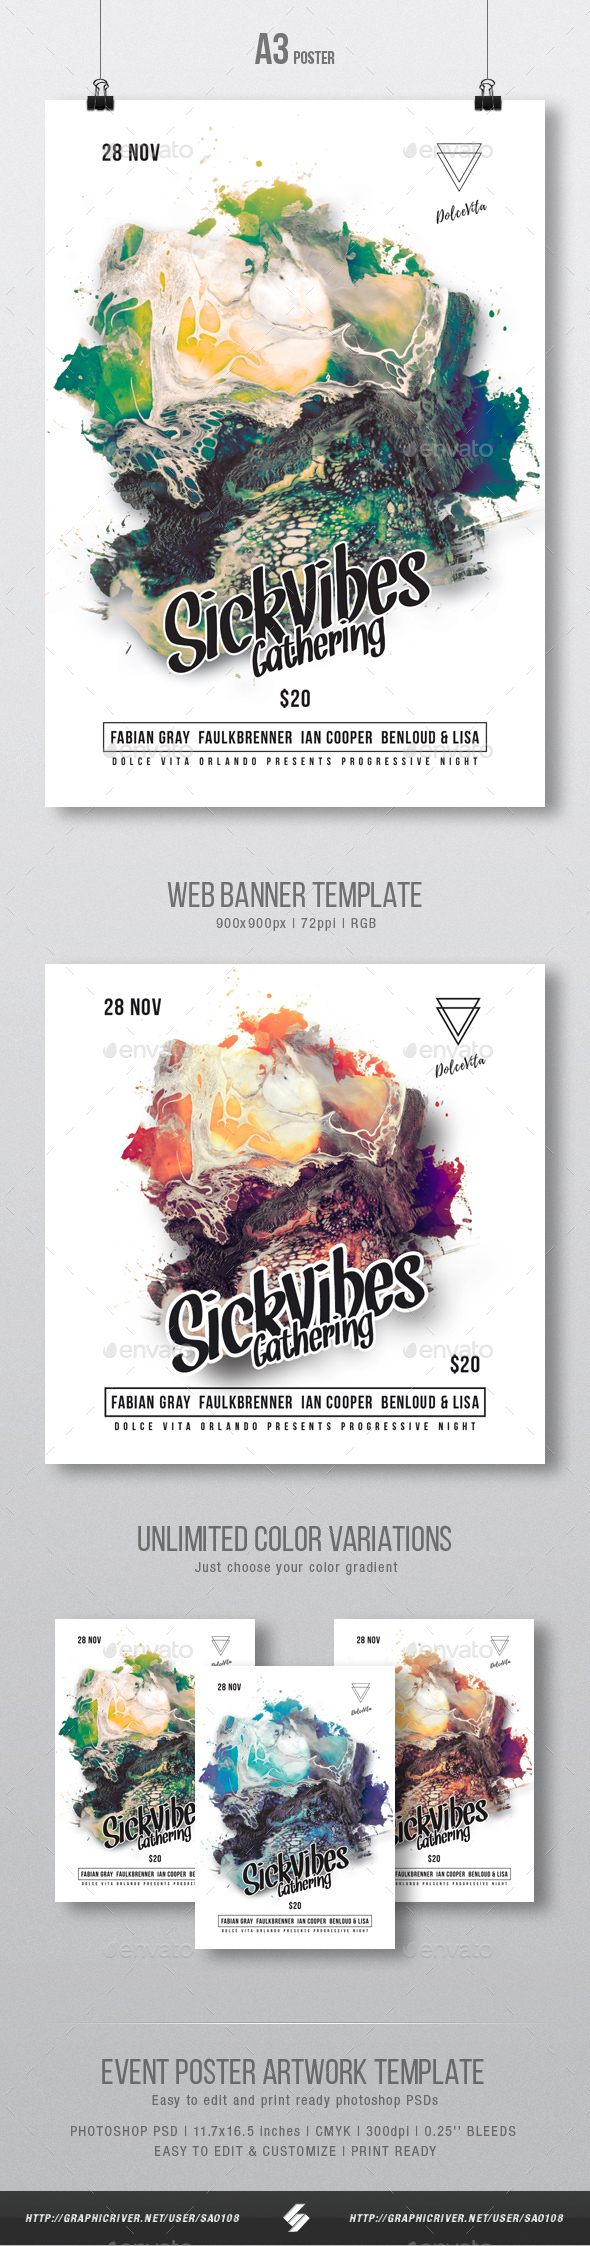 Sick Vibes - Party Flyer / Poster Artwork Template - Clubs & Parties Events